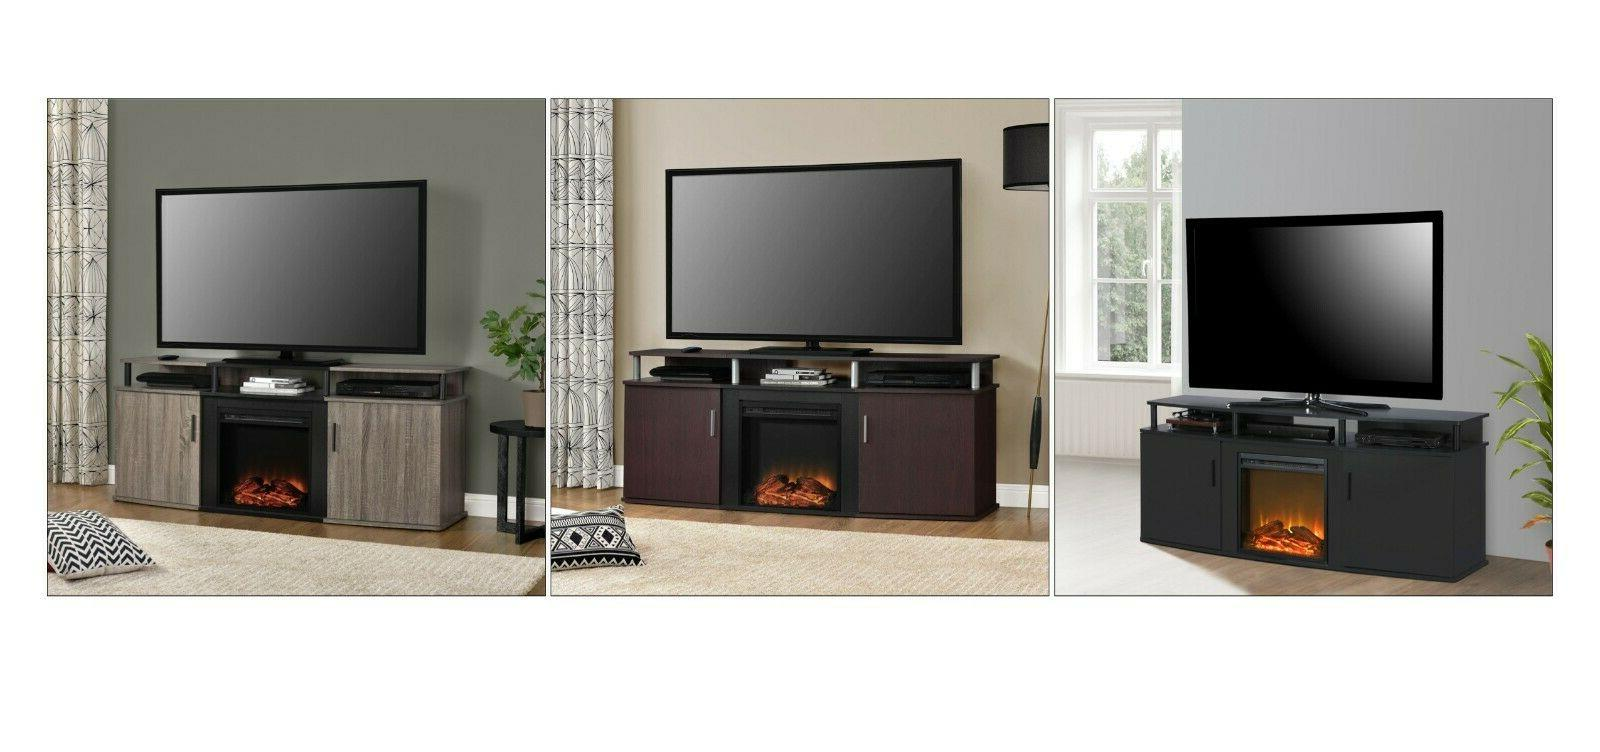 70 tv media stand fireplace electric heater